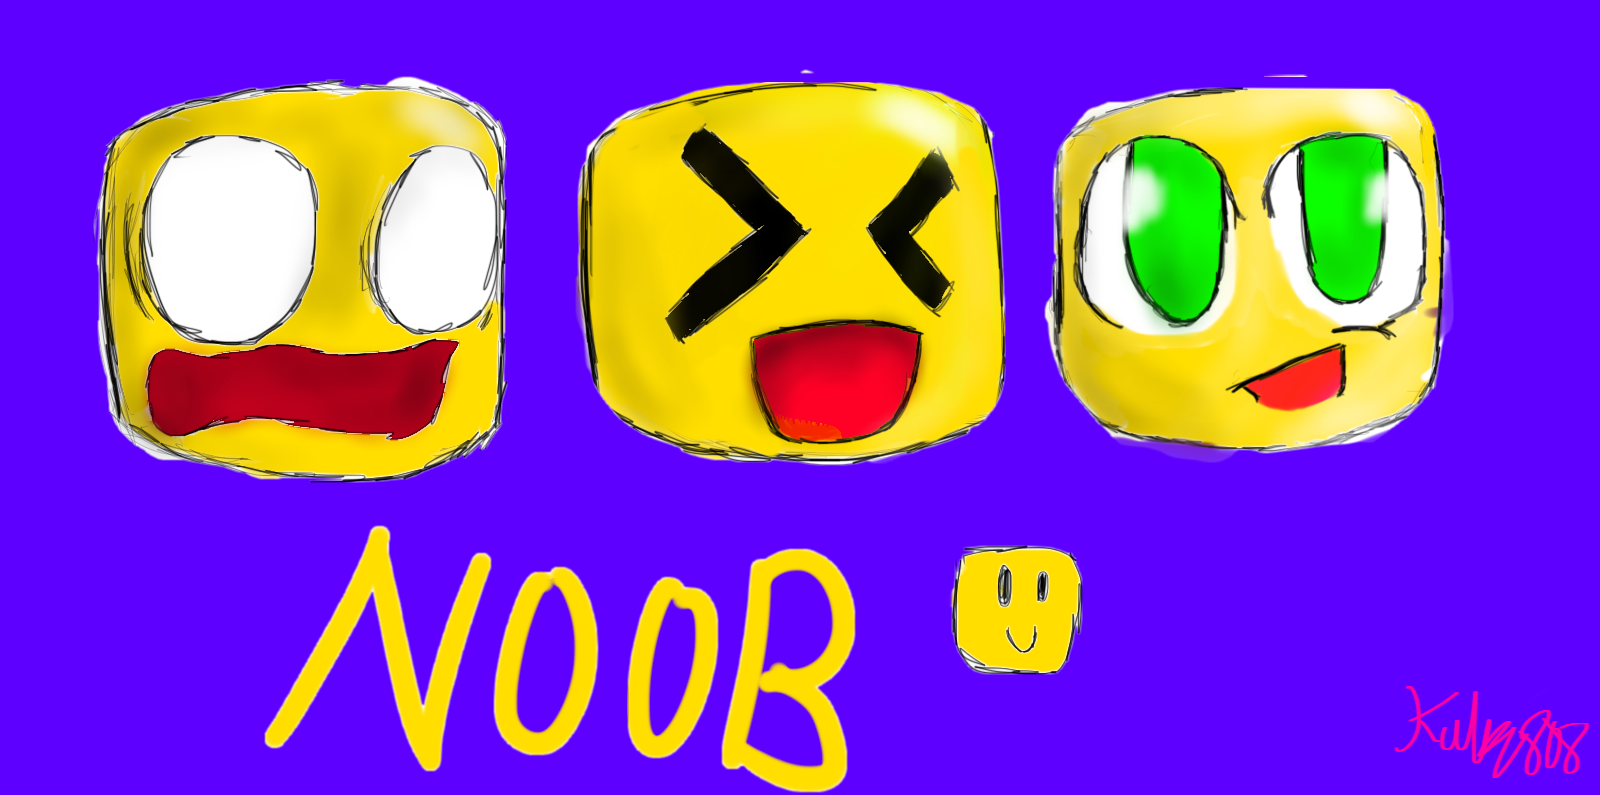 Sketchs Of Roblox Noob By Kally808 On Deviantart